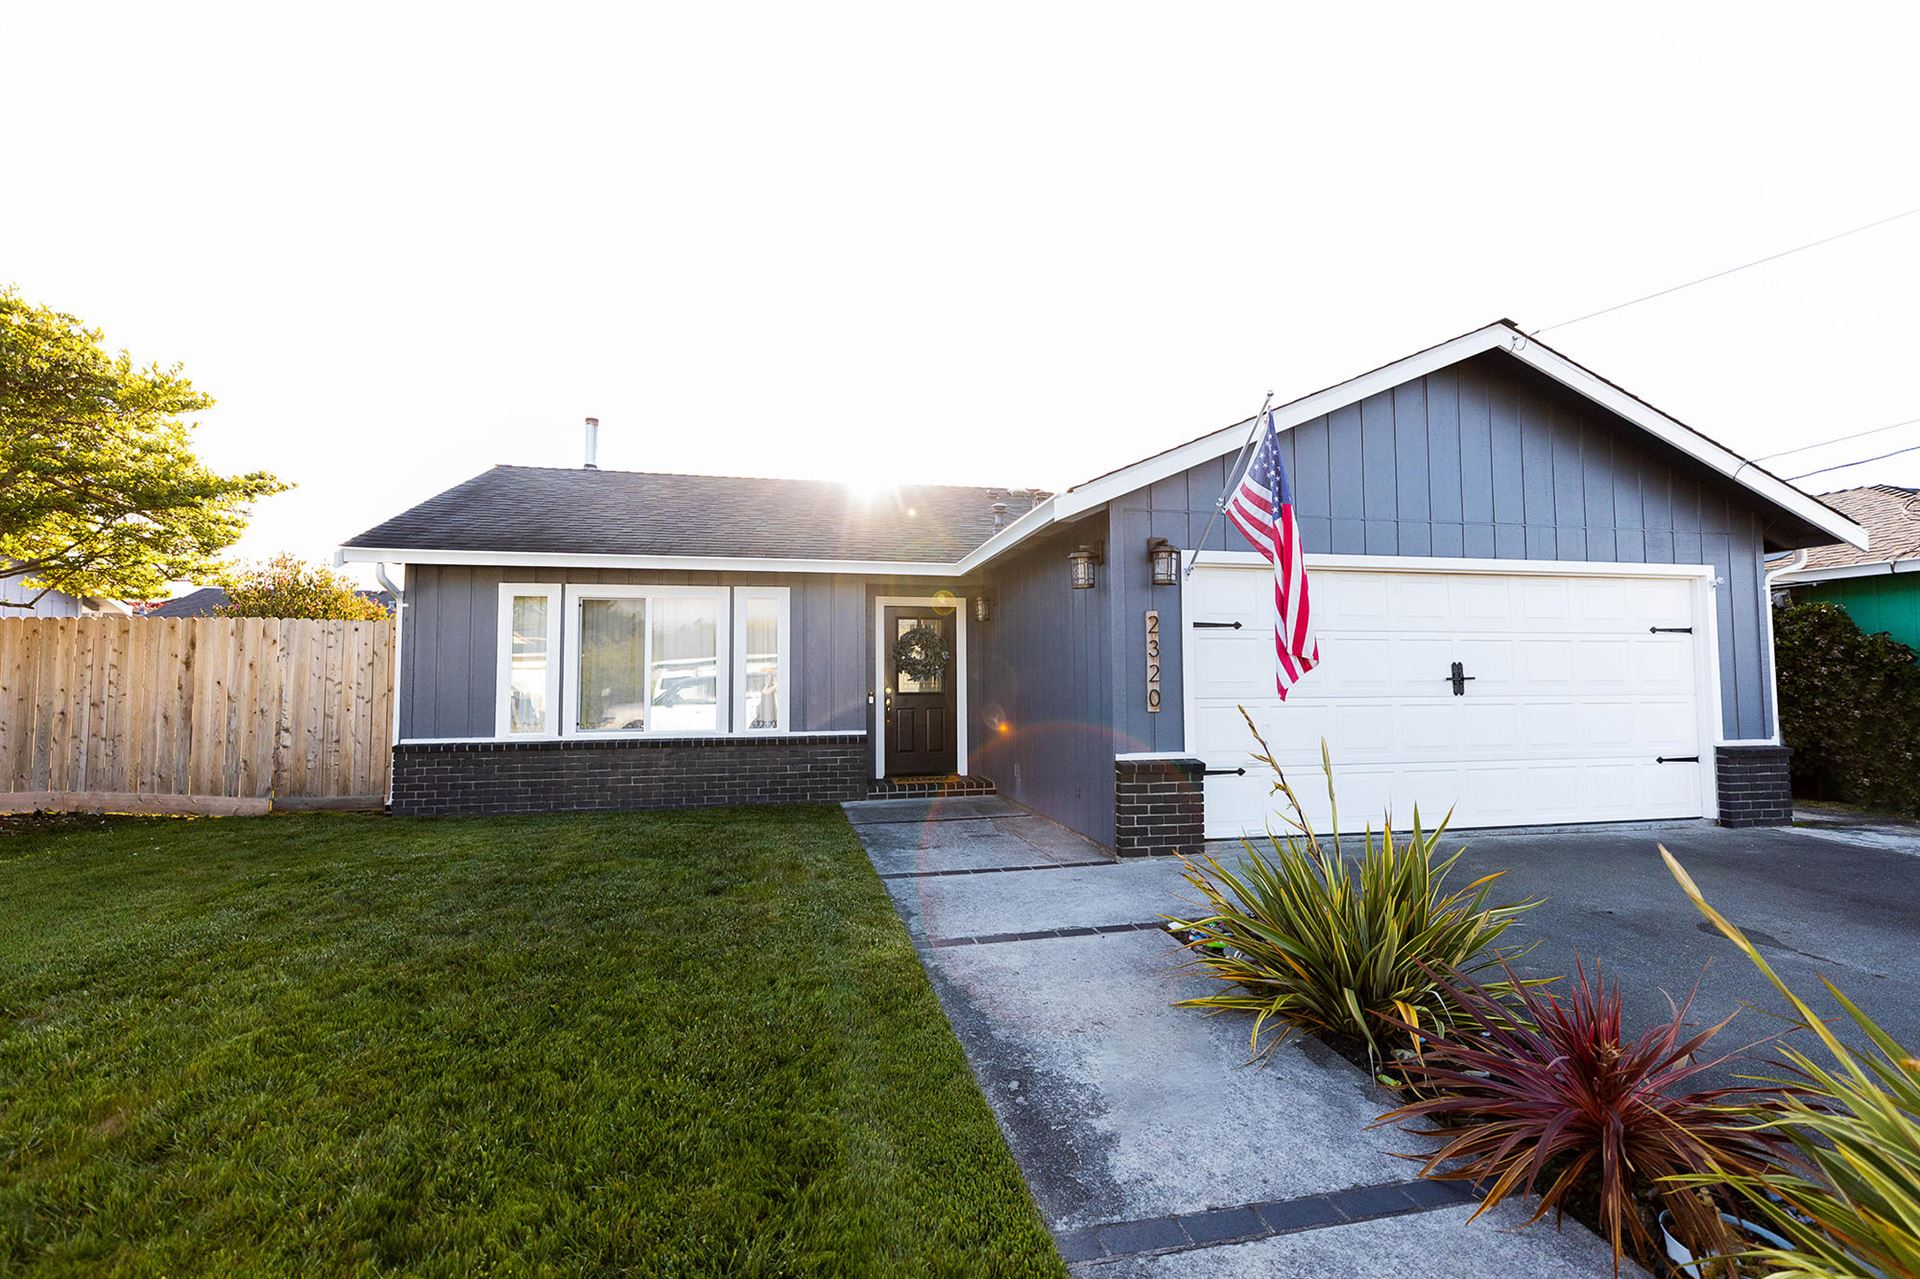 2320 Ohio Street, Eureka, CA 95501 - MLS#: 259020